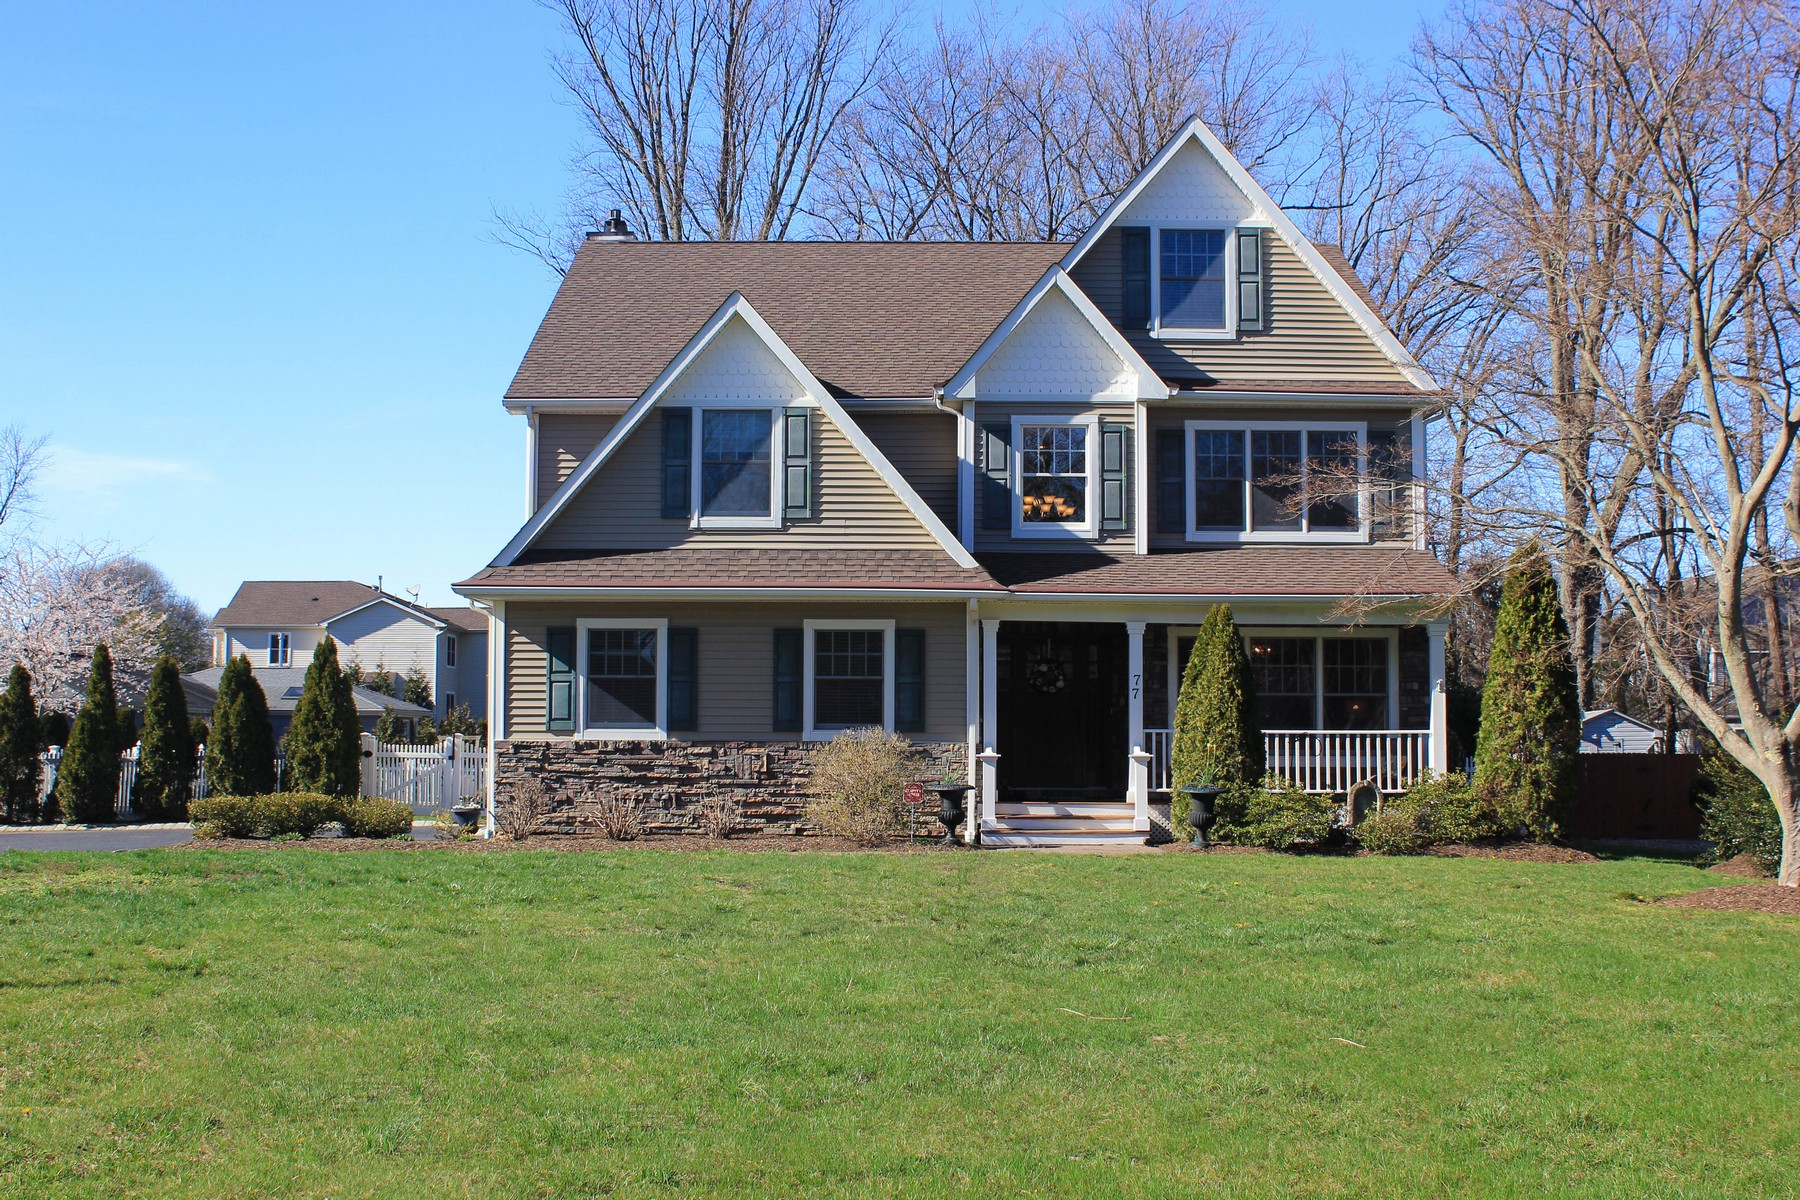 Single Family Home for Sale at 77 Sycamore Ave. Little Silver, New Jersey, 07739 United States